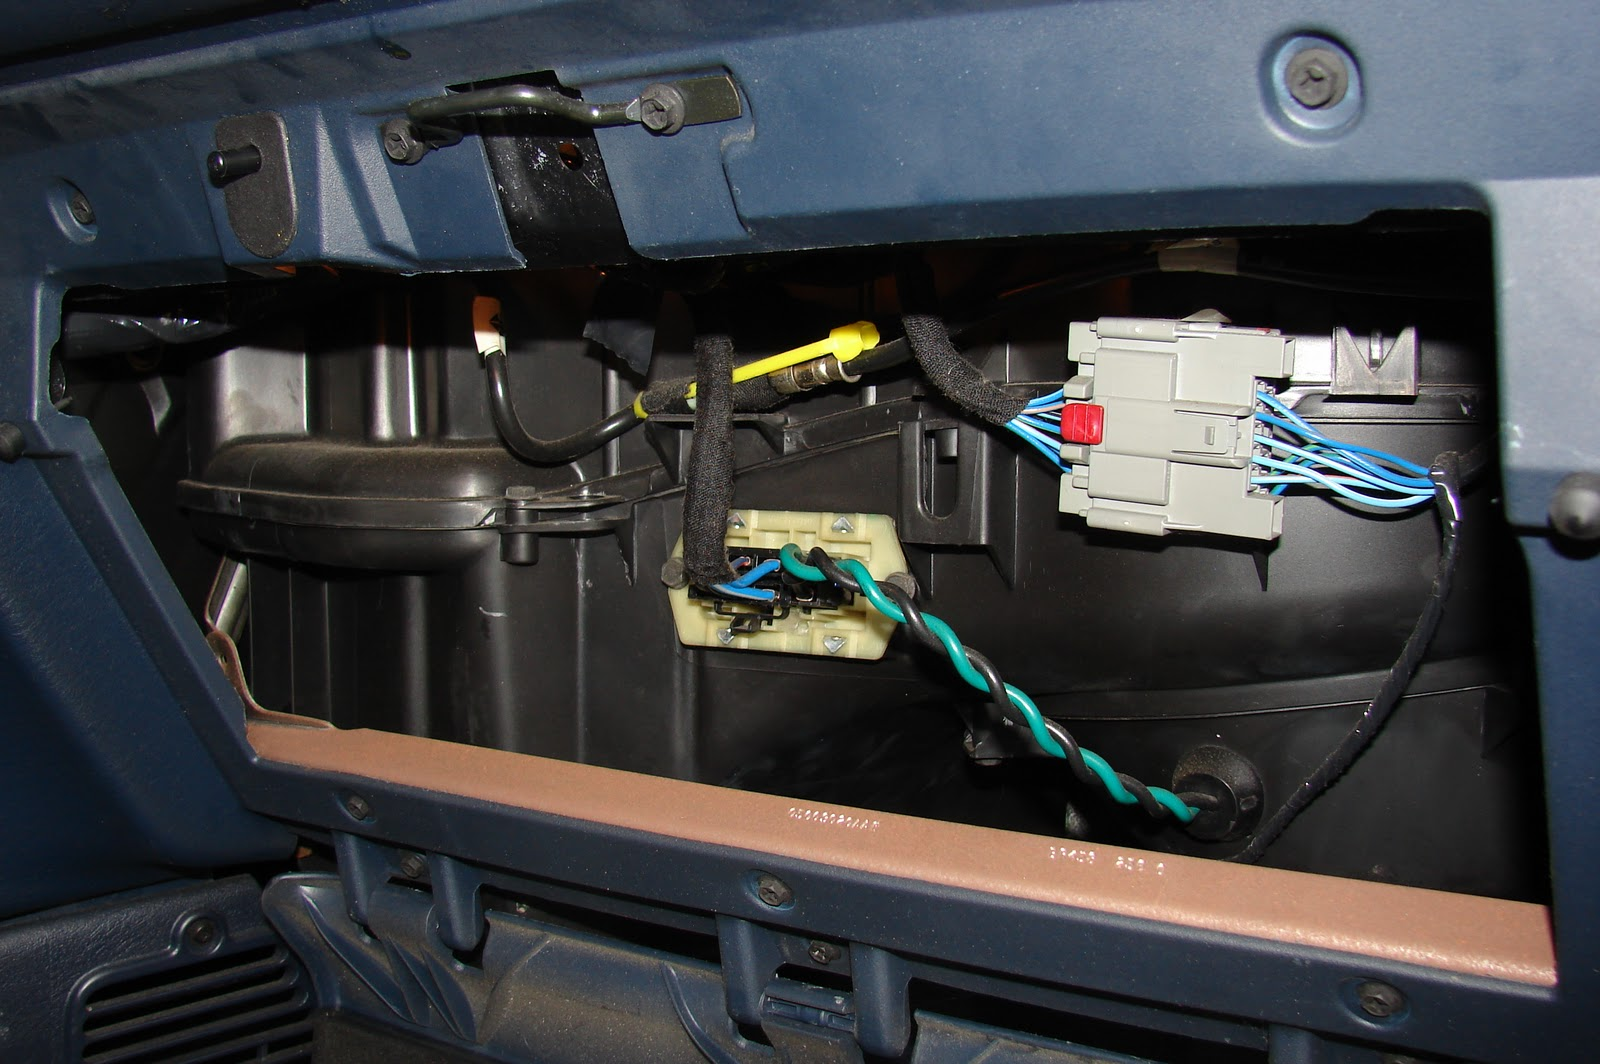 2001 Dodge Grand Caravan Fuse Box Diagram Wiring Library 2000 Dsc08751 My Commentary And Technical Help Fan Only Works On 2007